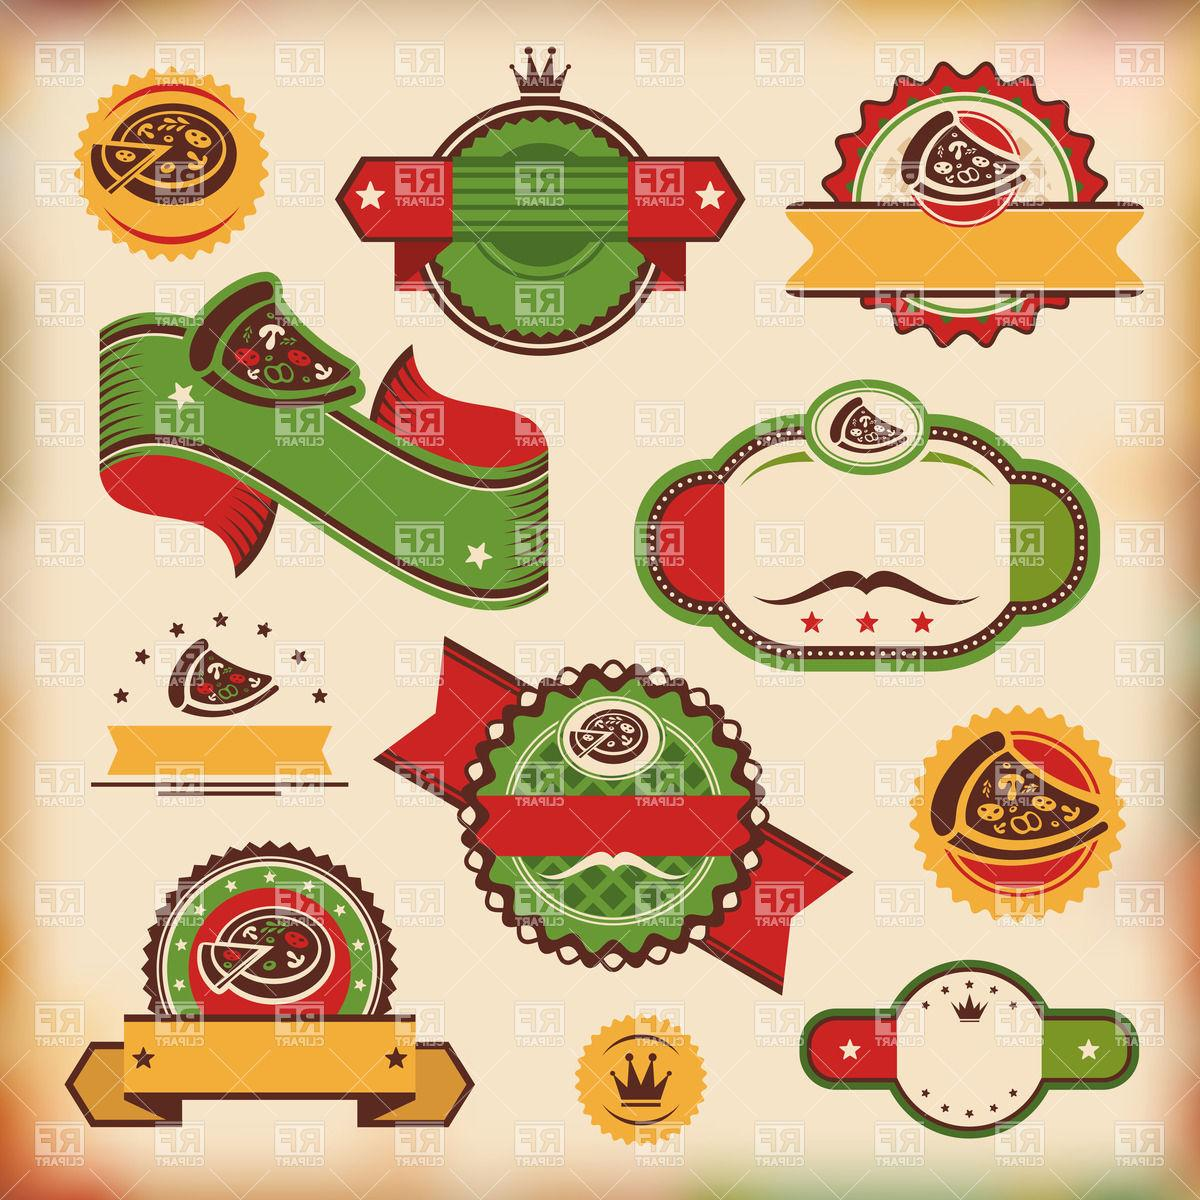 Vintage italian clipart free download Best Free Italian Border Clip Art Vector Images » Free ... free download